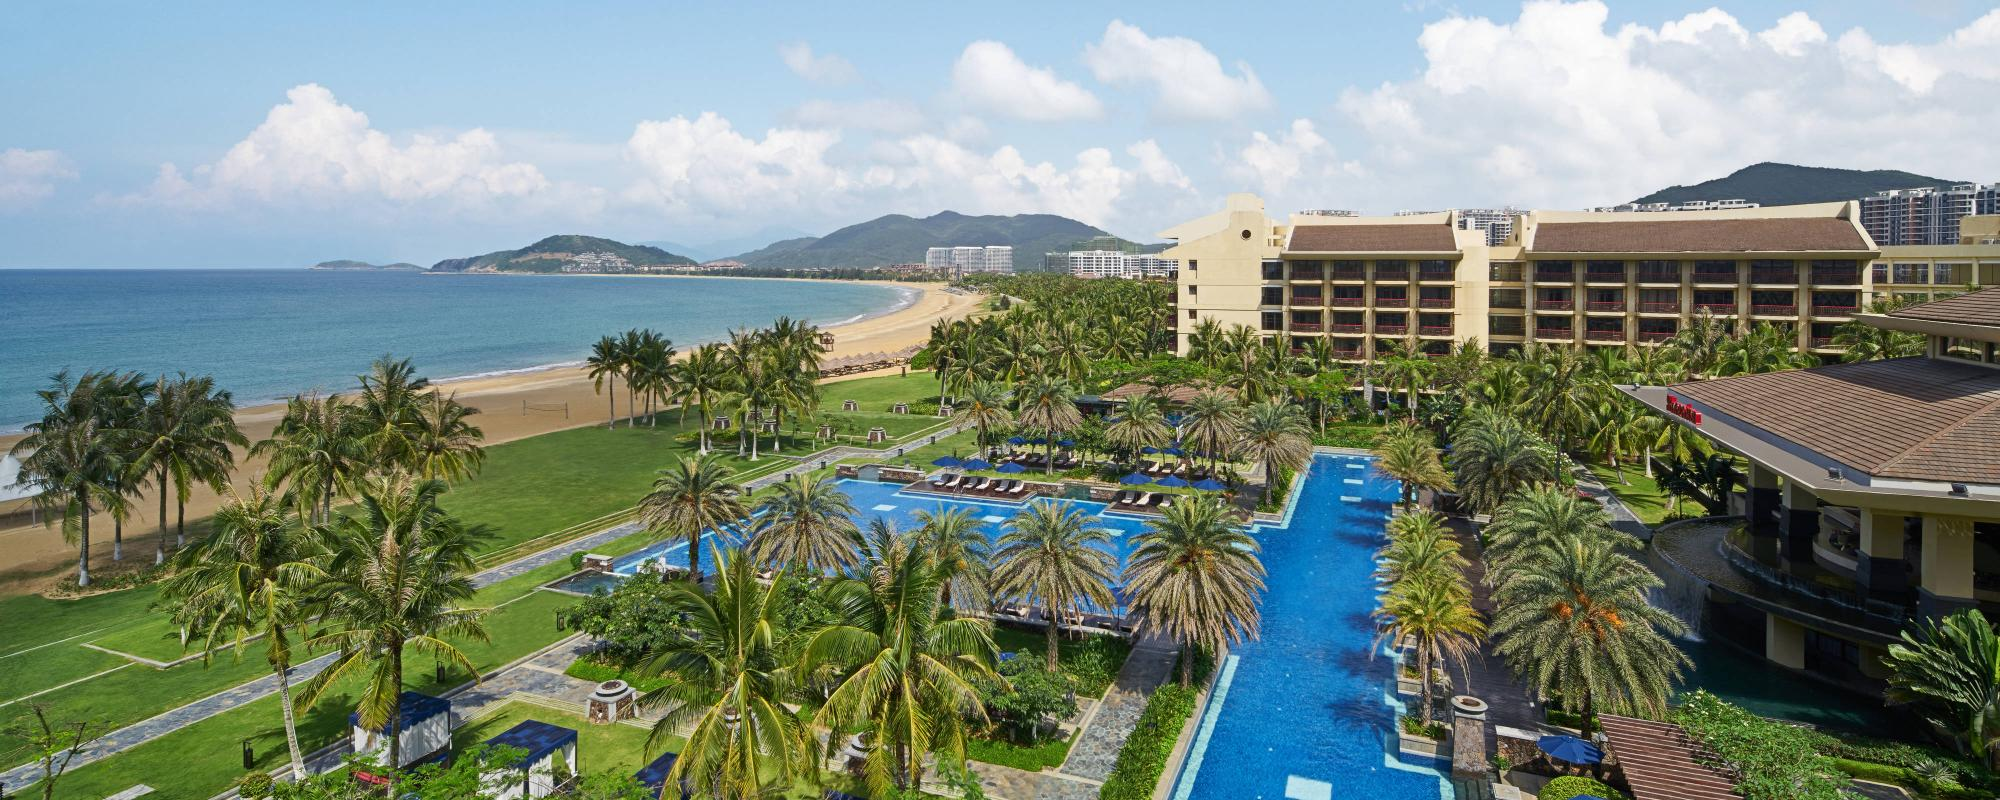 The Sheraton Shenzhou Peninsula Resort's impressive hotel situated in sensational China.